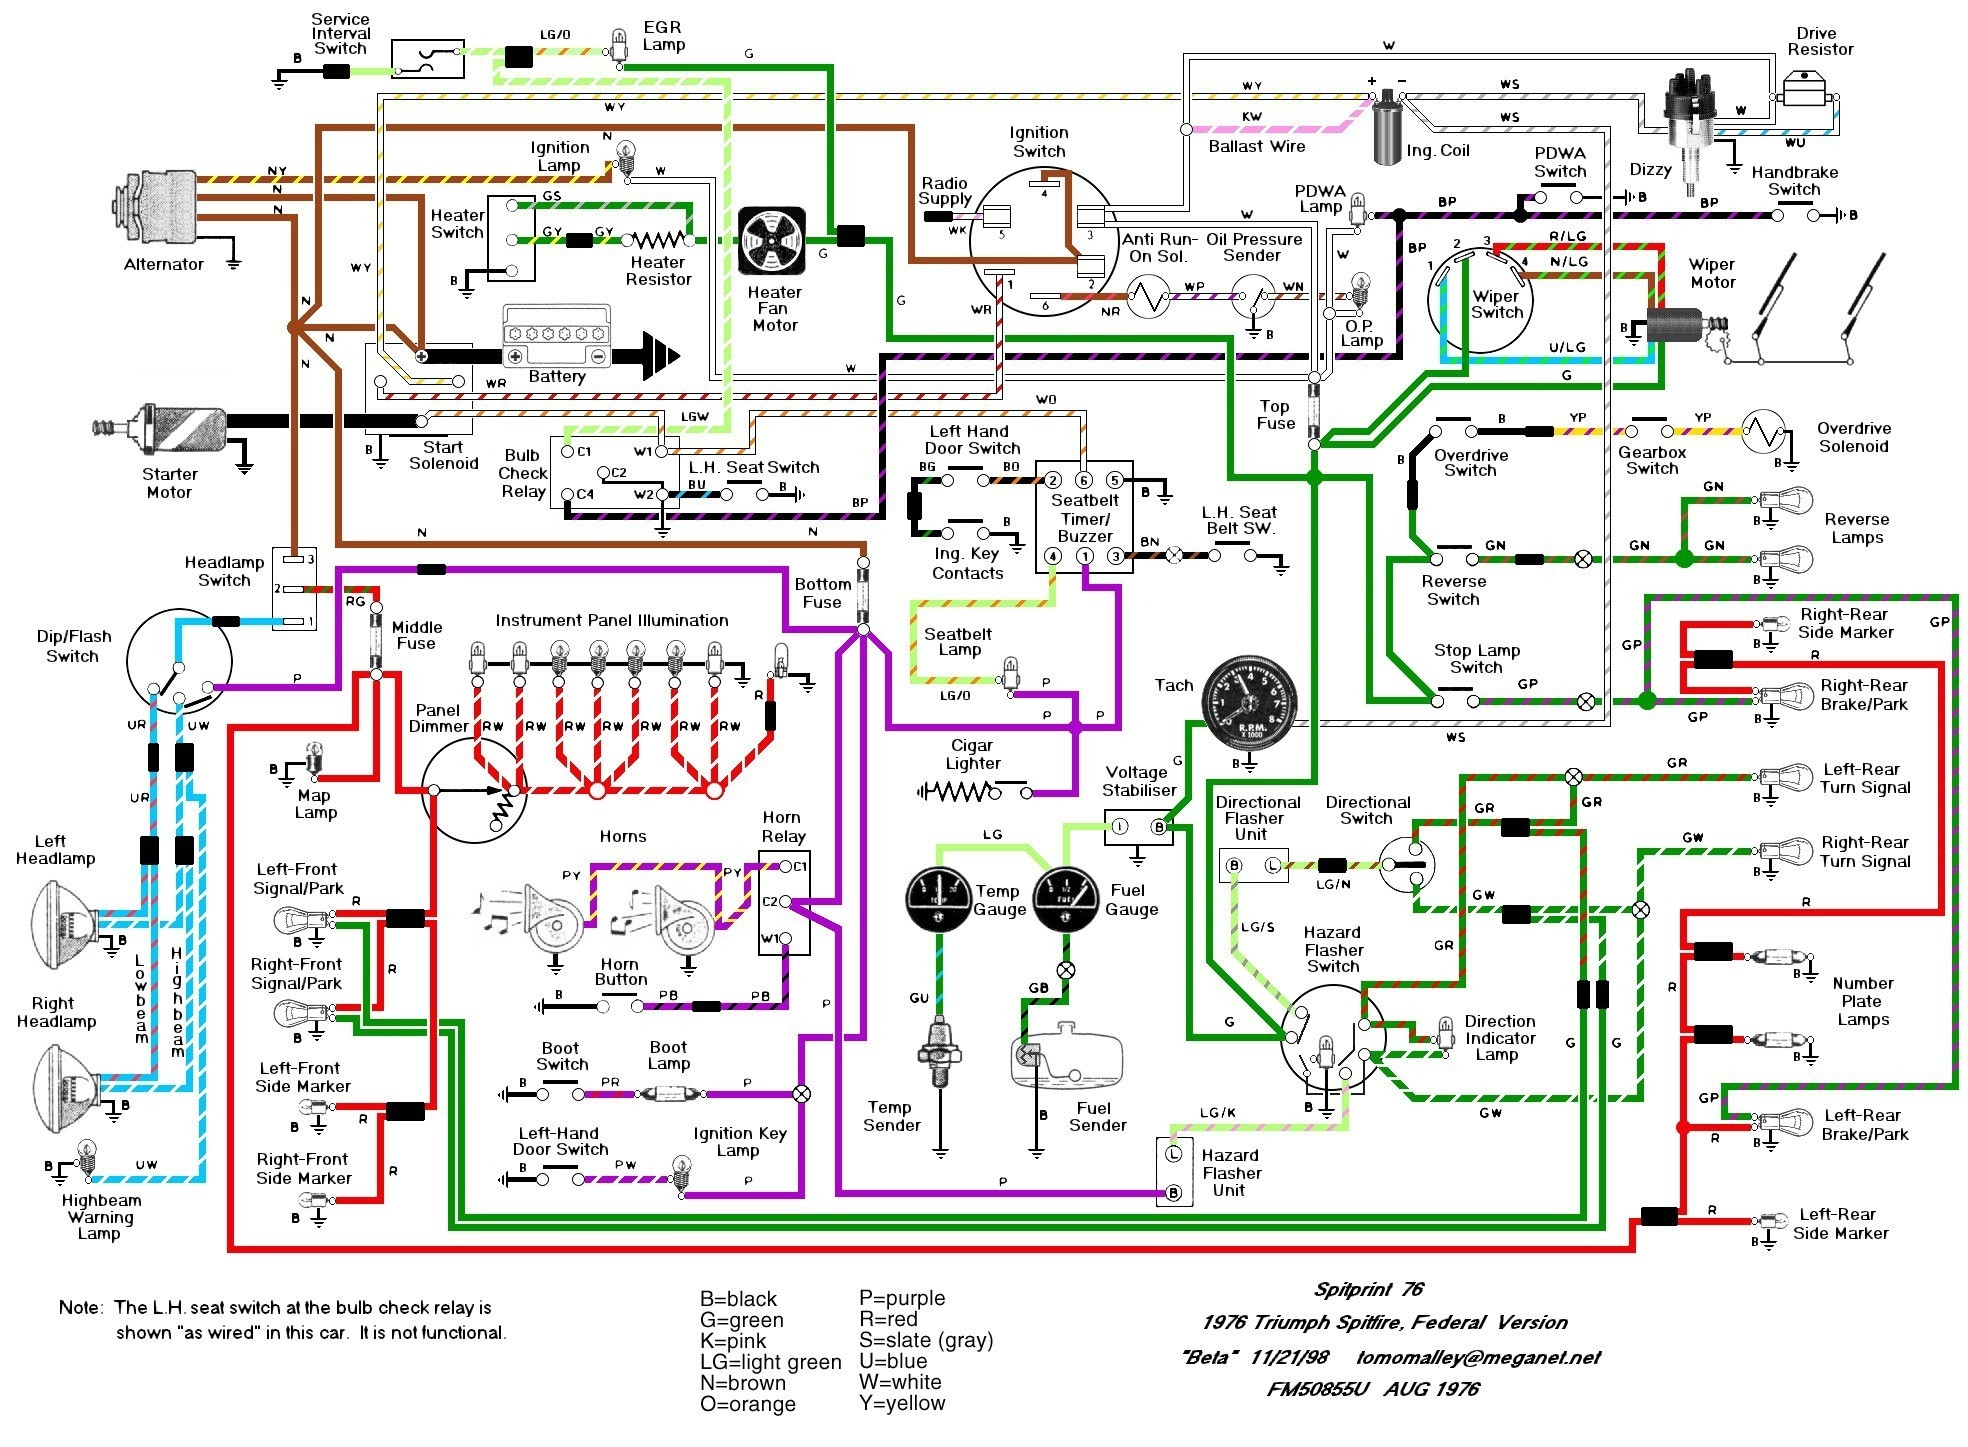 hight resolution of auto electrical wiring diagram software home electrical wiring diagram software new circuit diagram software download